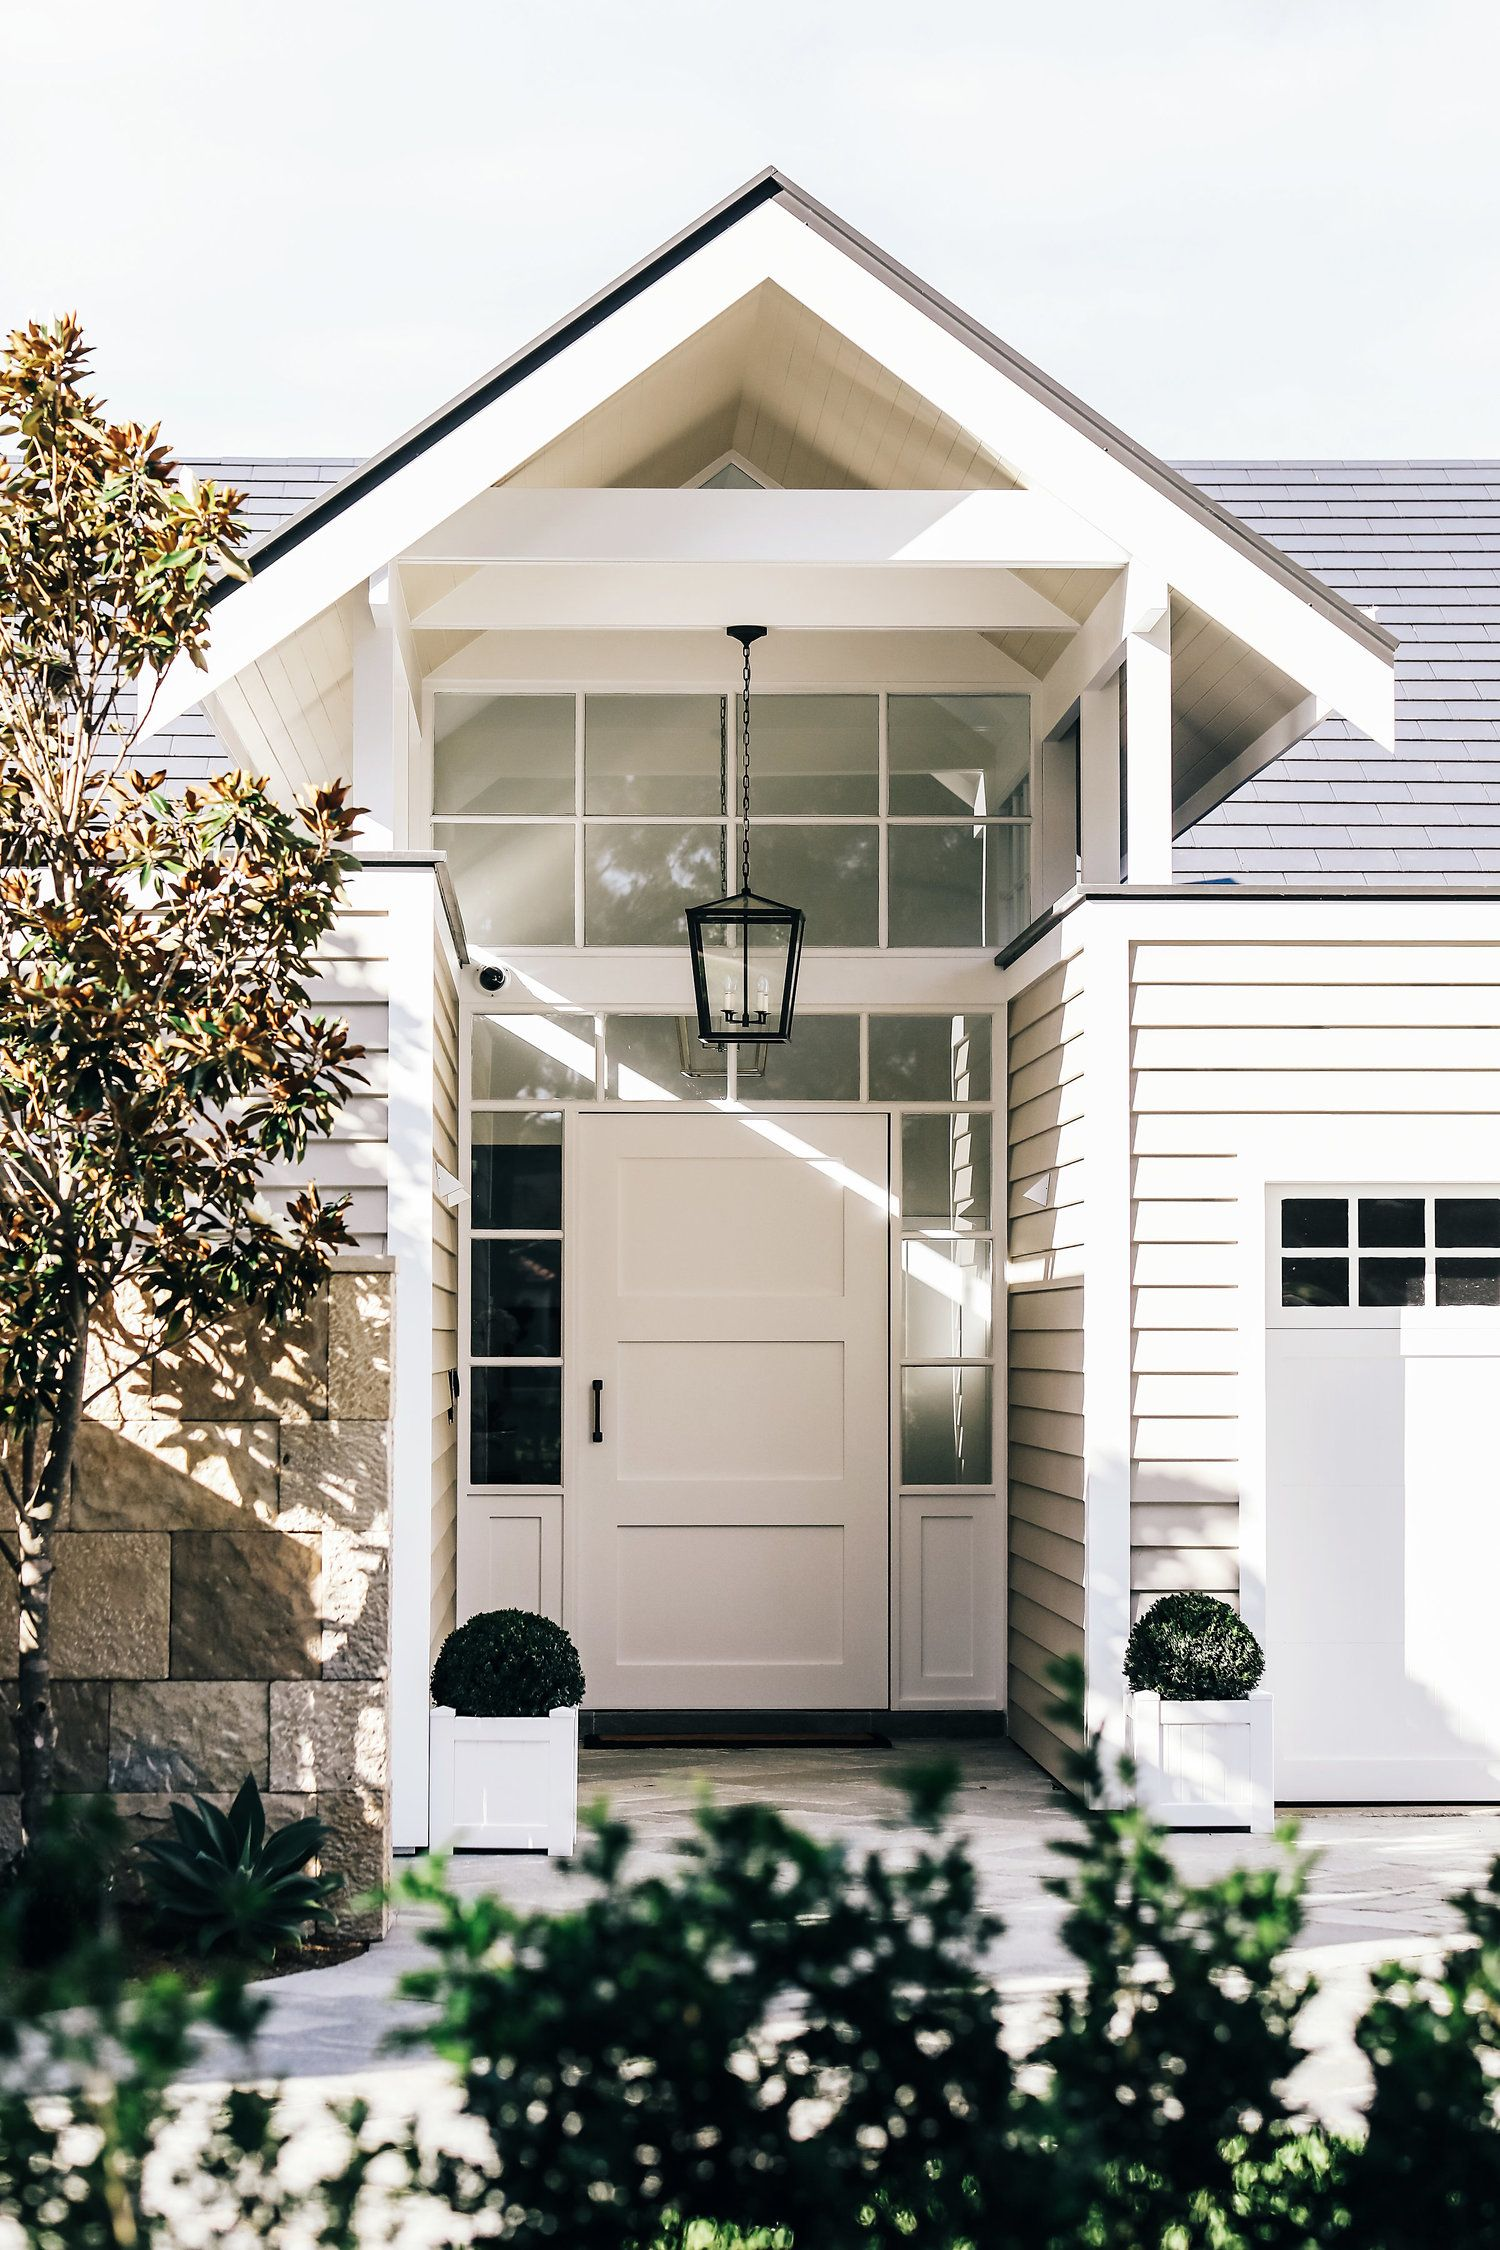 Hamptons Style Entrance Of Luxury Home In Sydney After A Full Renovation Hamptons House Exterior House Exterior Hamptons Style Homes